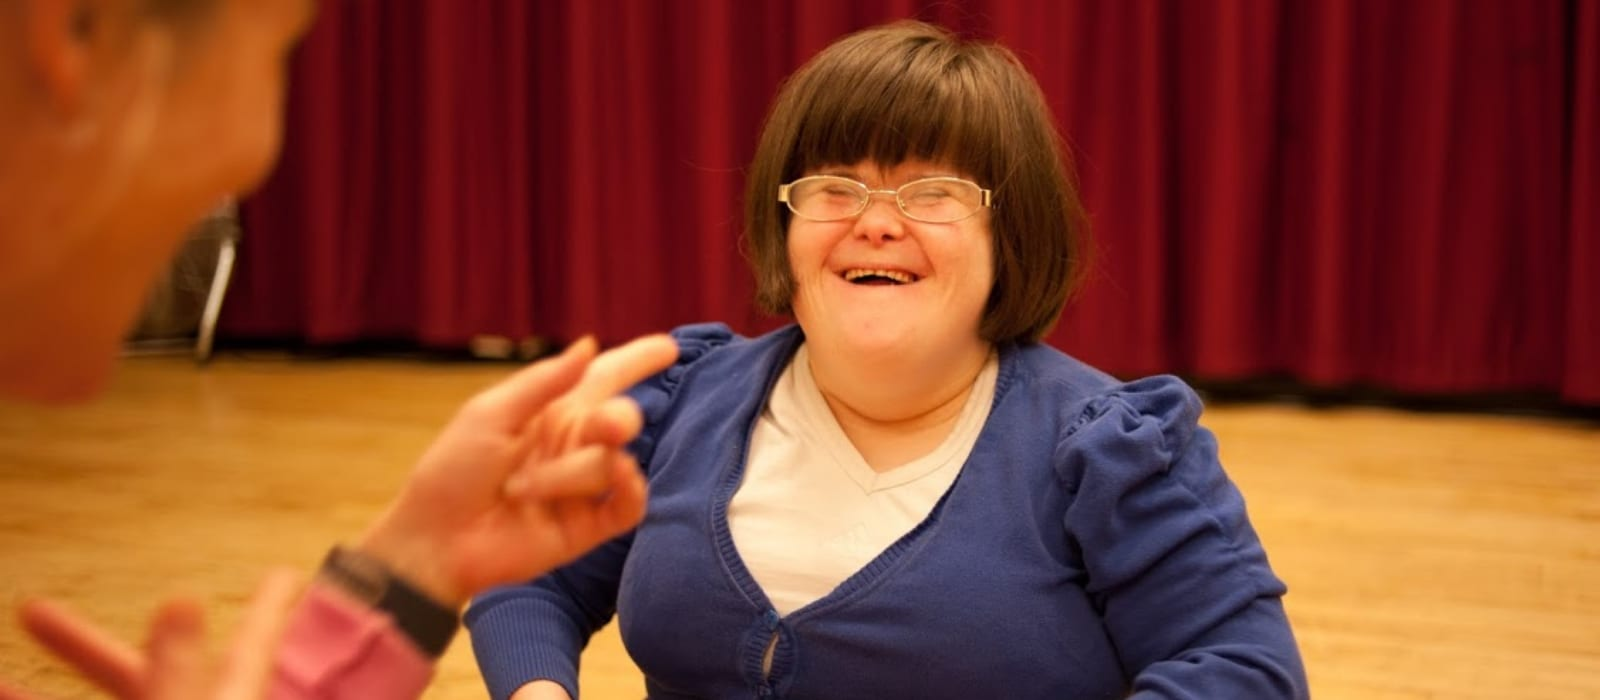 A dancer smiling in Rubicons dance for disabled adults session.